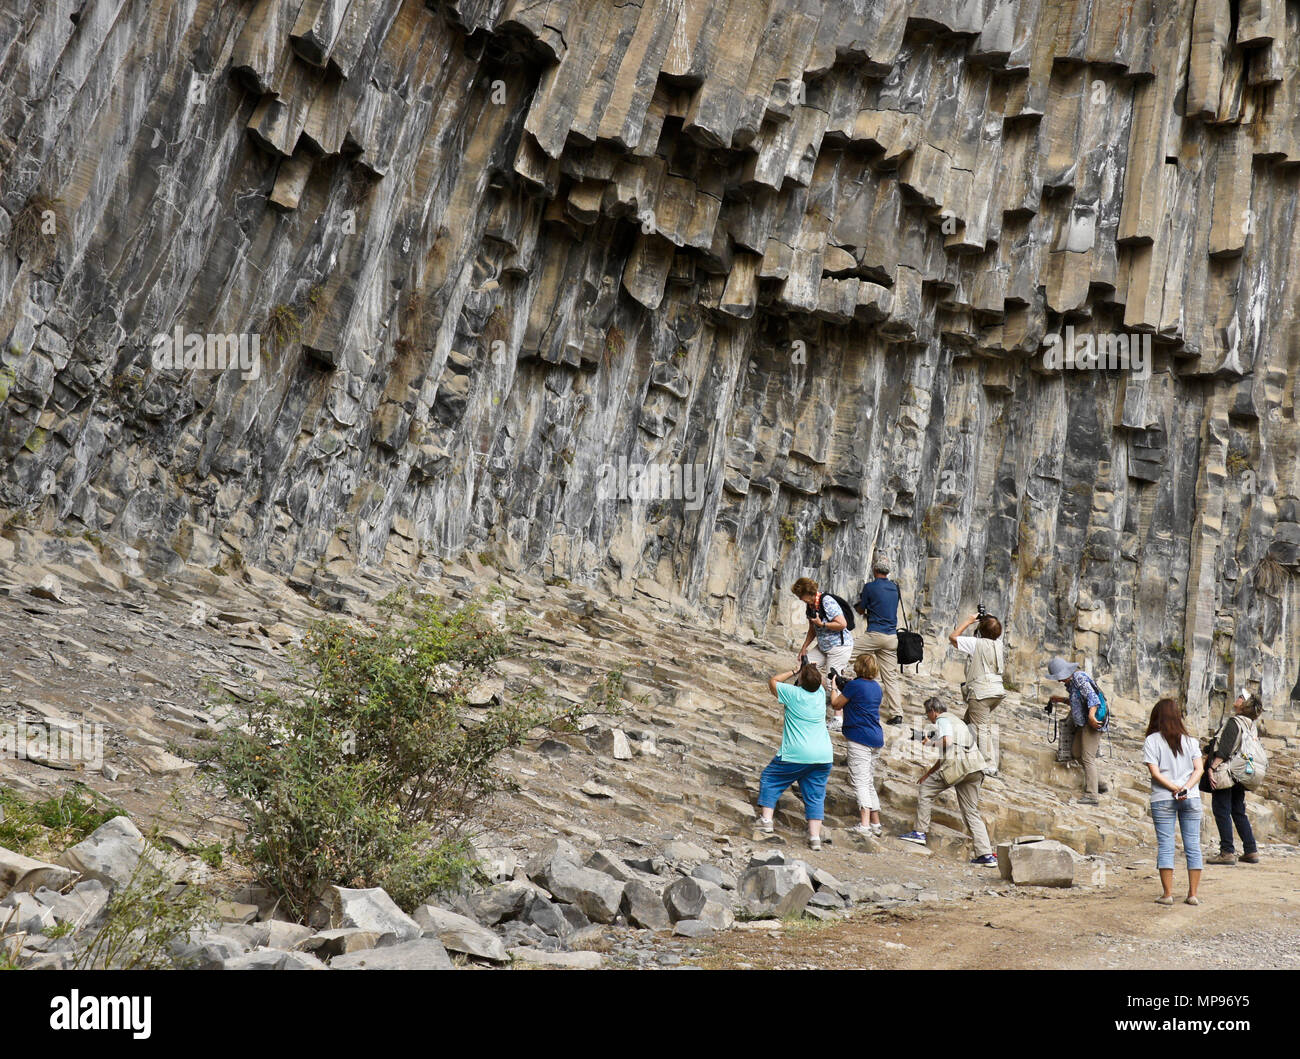 Garni, Armenia: In Garni Gorge, tourists photograph a geological formation of octagonal basalt columns called the Symphony of Stones. - Stock Image